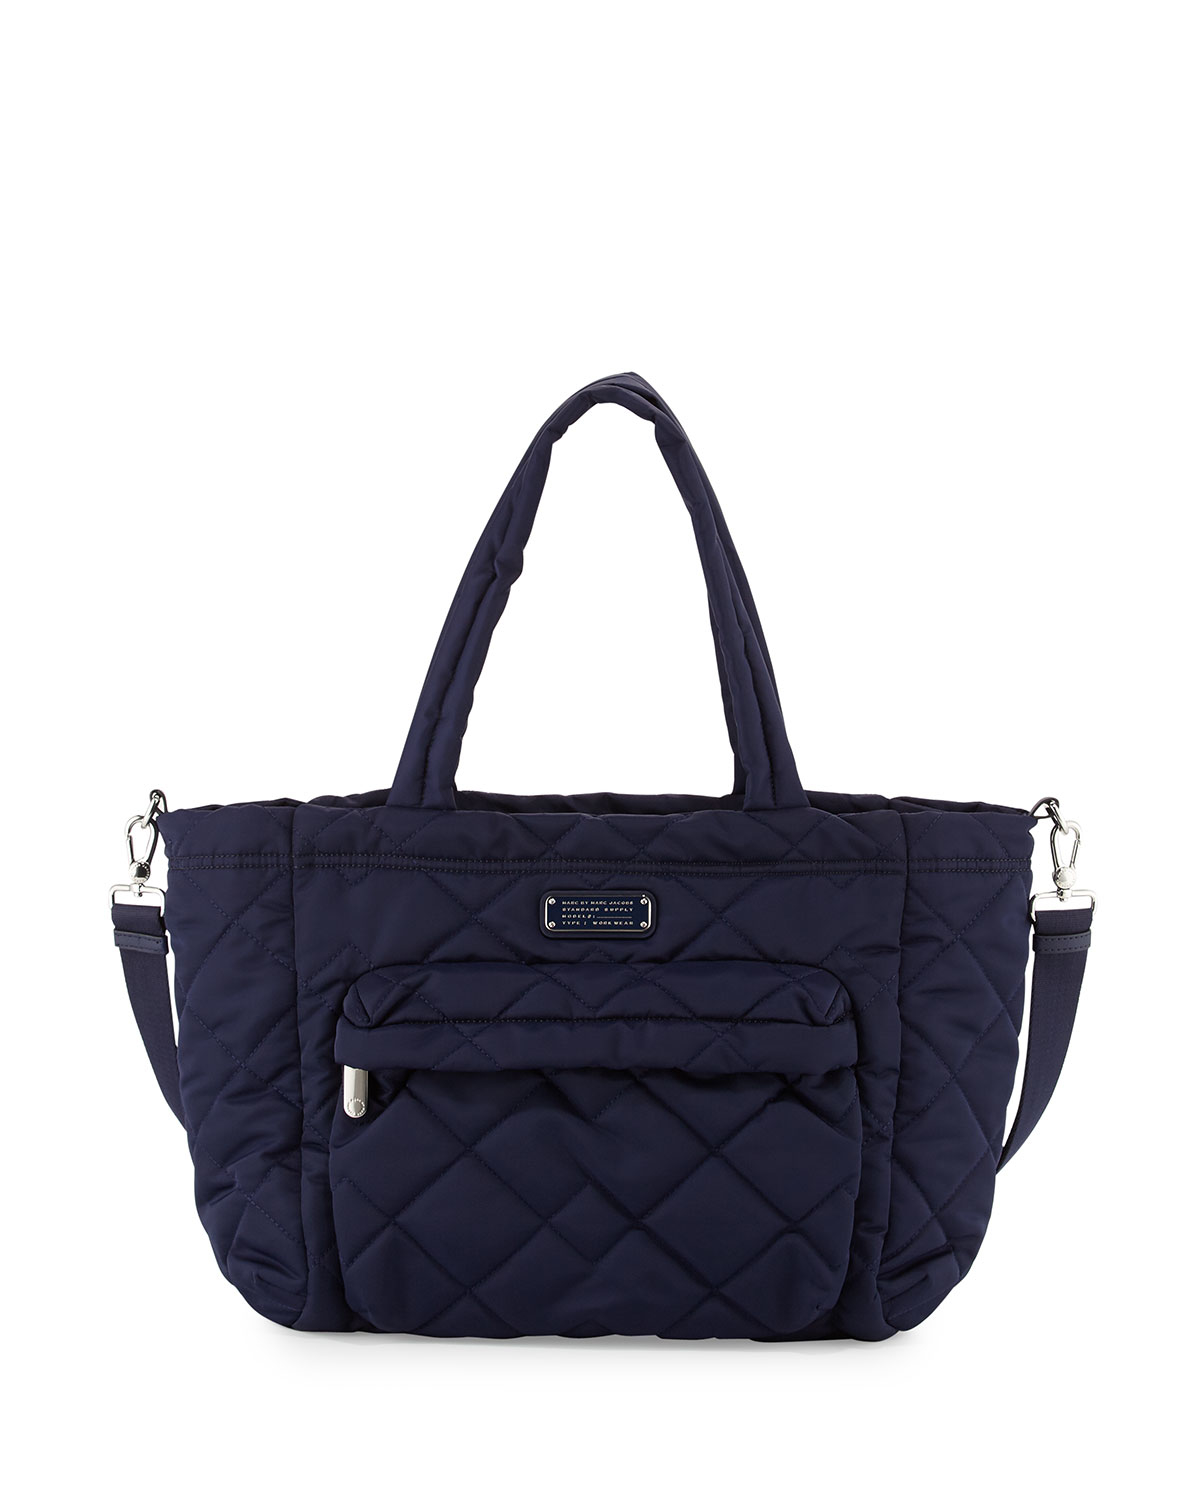 marc by marc jacobs crosby quilted diaper bag in blue lyst. Black Bedroom Furniture Sets. Home Design Ideas